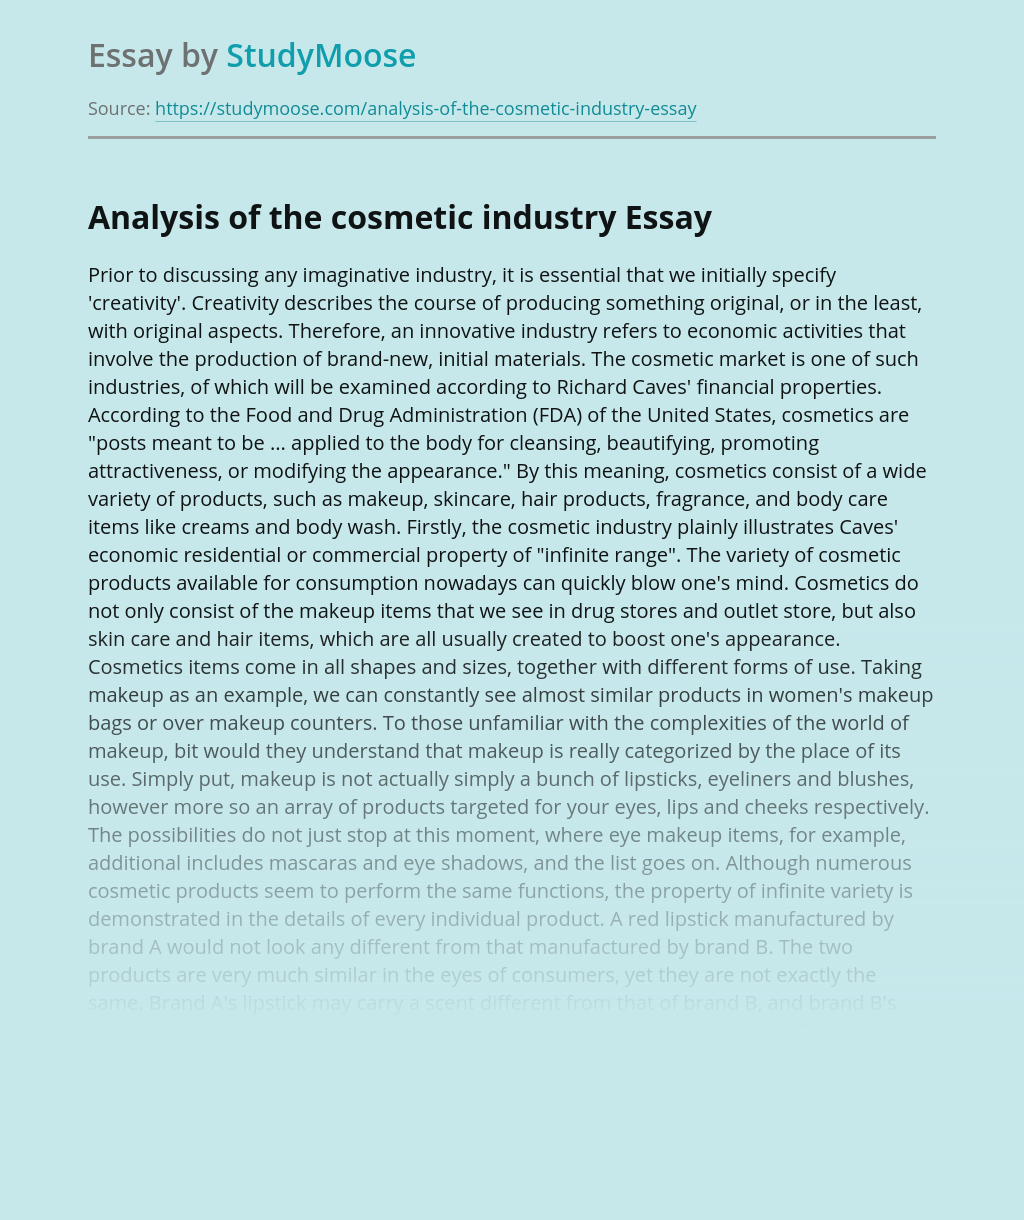 Analysis of the cosmetic industry